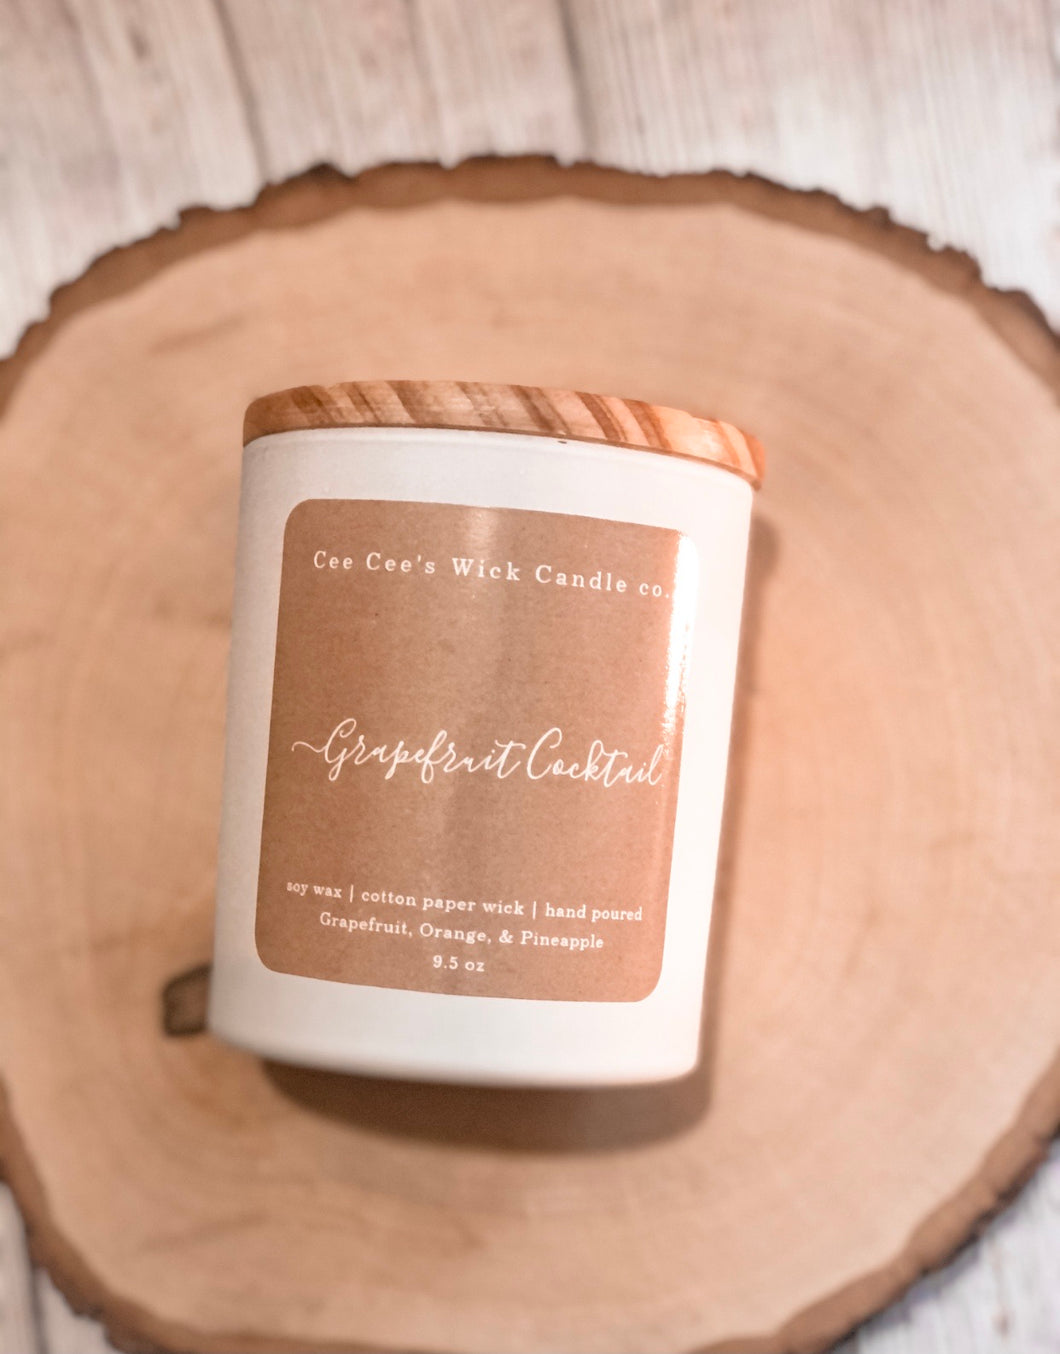 Grapefruit Cocktail Candle